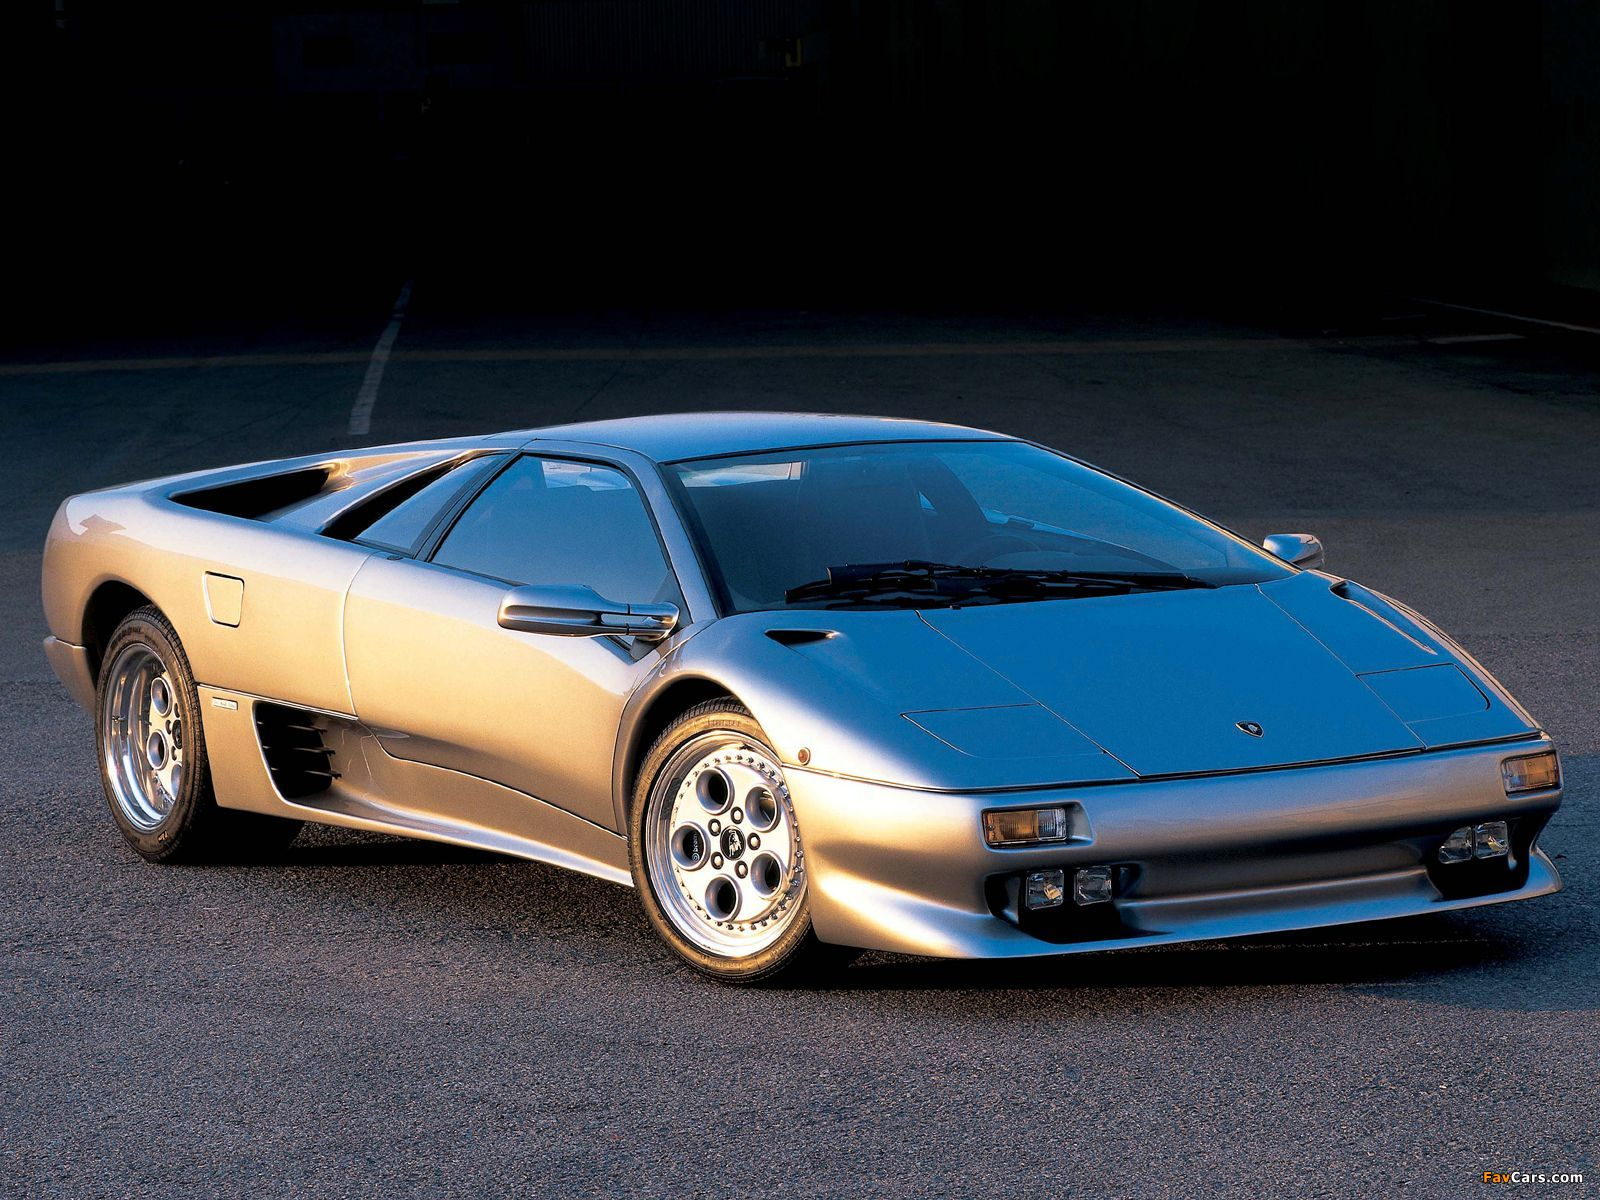 Lamborghini Diablo Vt Ver 1 1993 98 Wallpapers 1600x1200